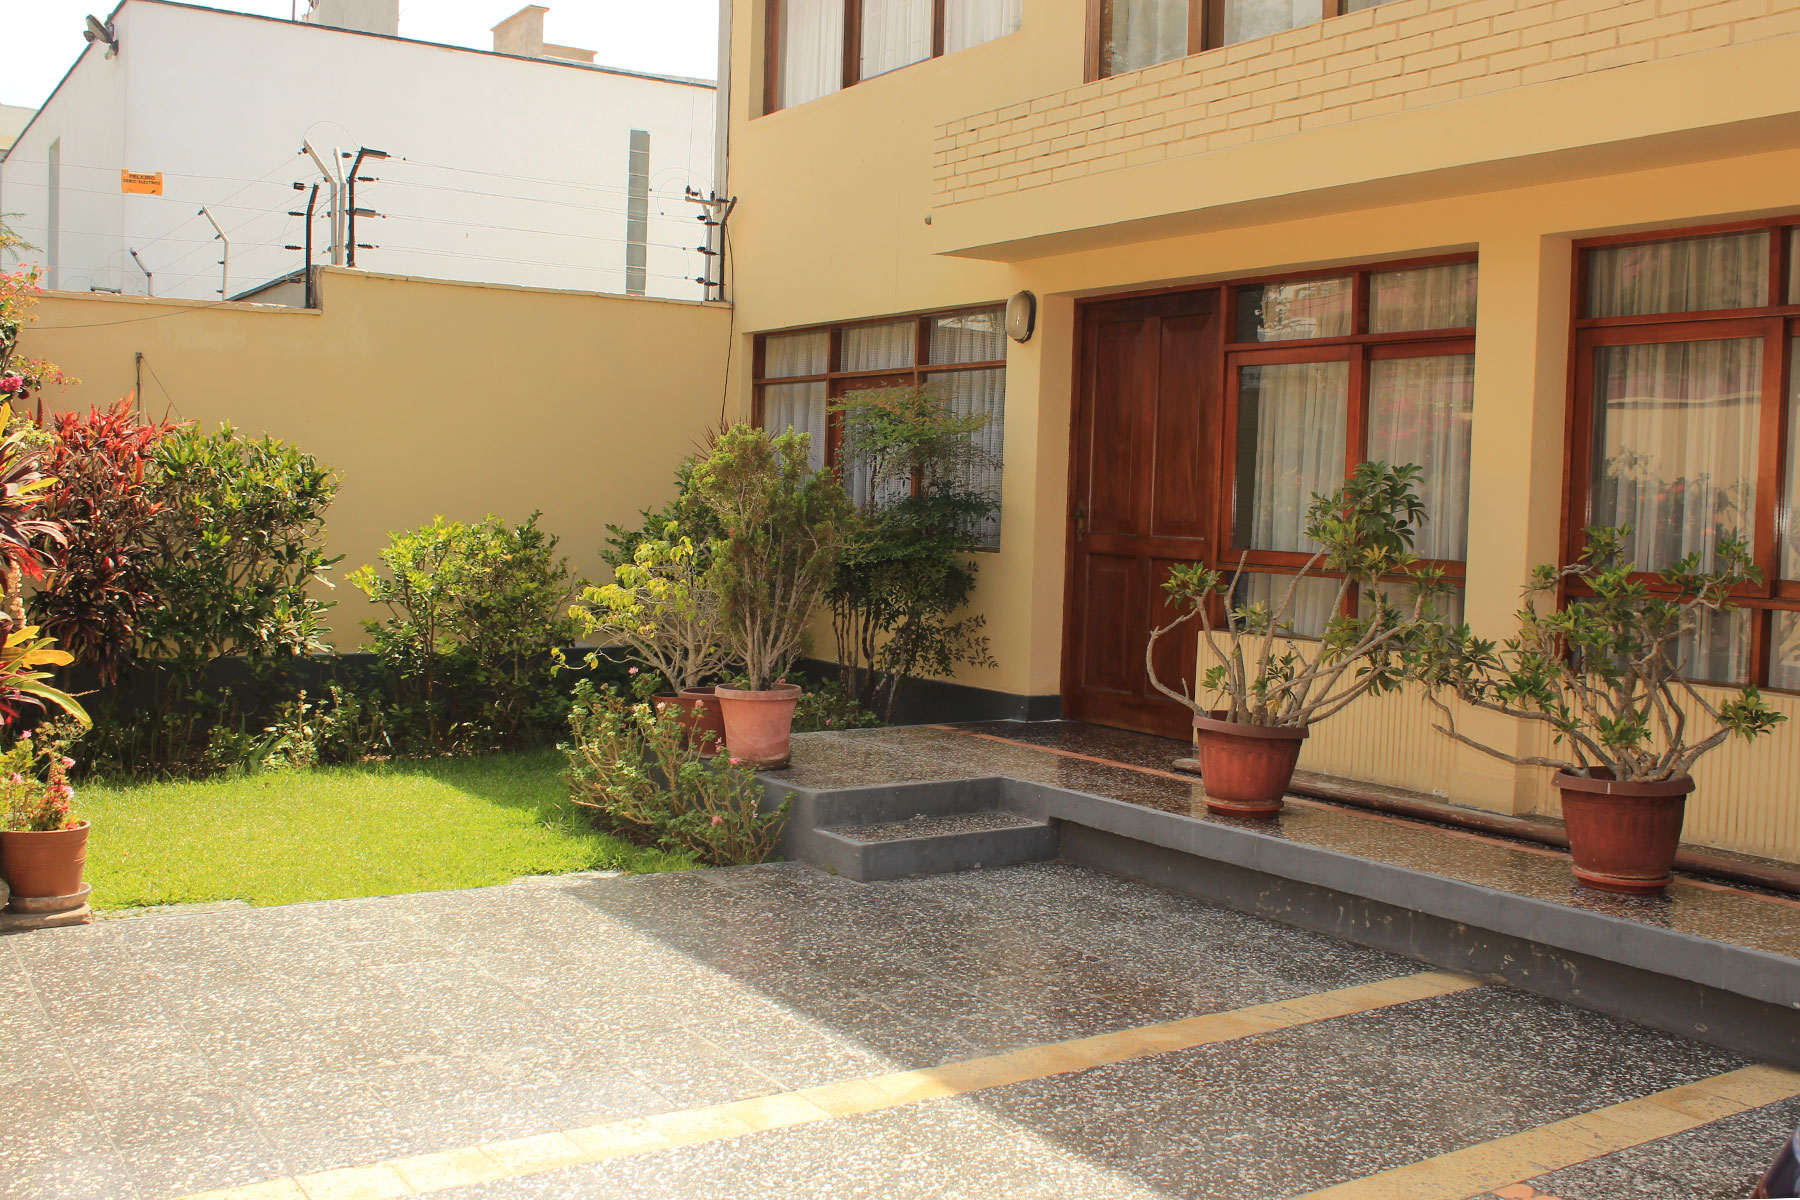 Townhouse for Sale at Elegante Casa con excelente ubicación Calle Paul de Beaudiez San Isidro, Lima, 27 Peru